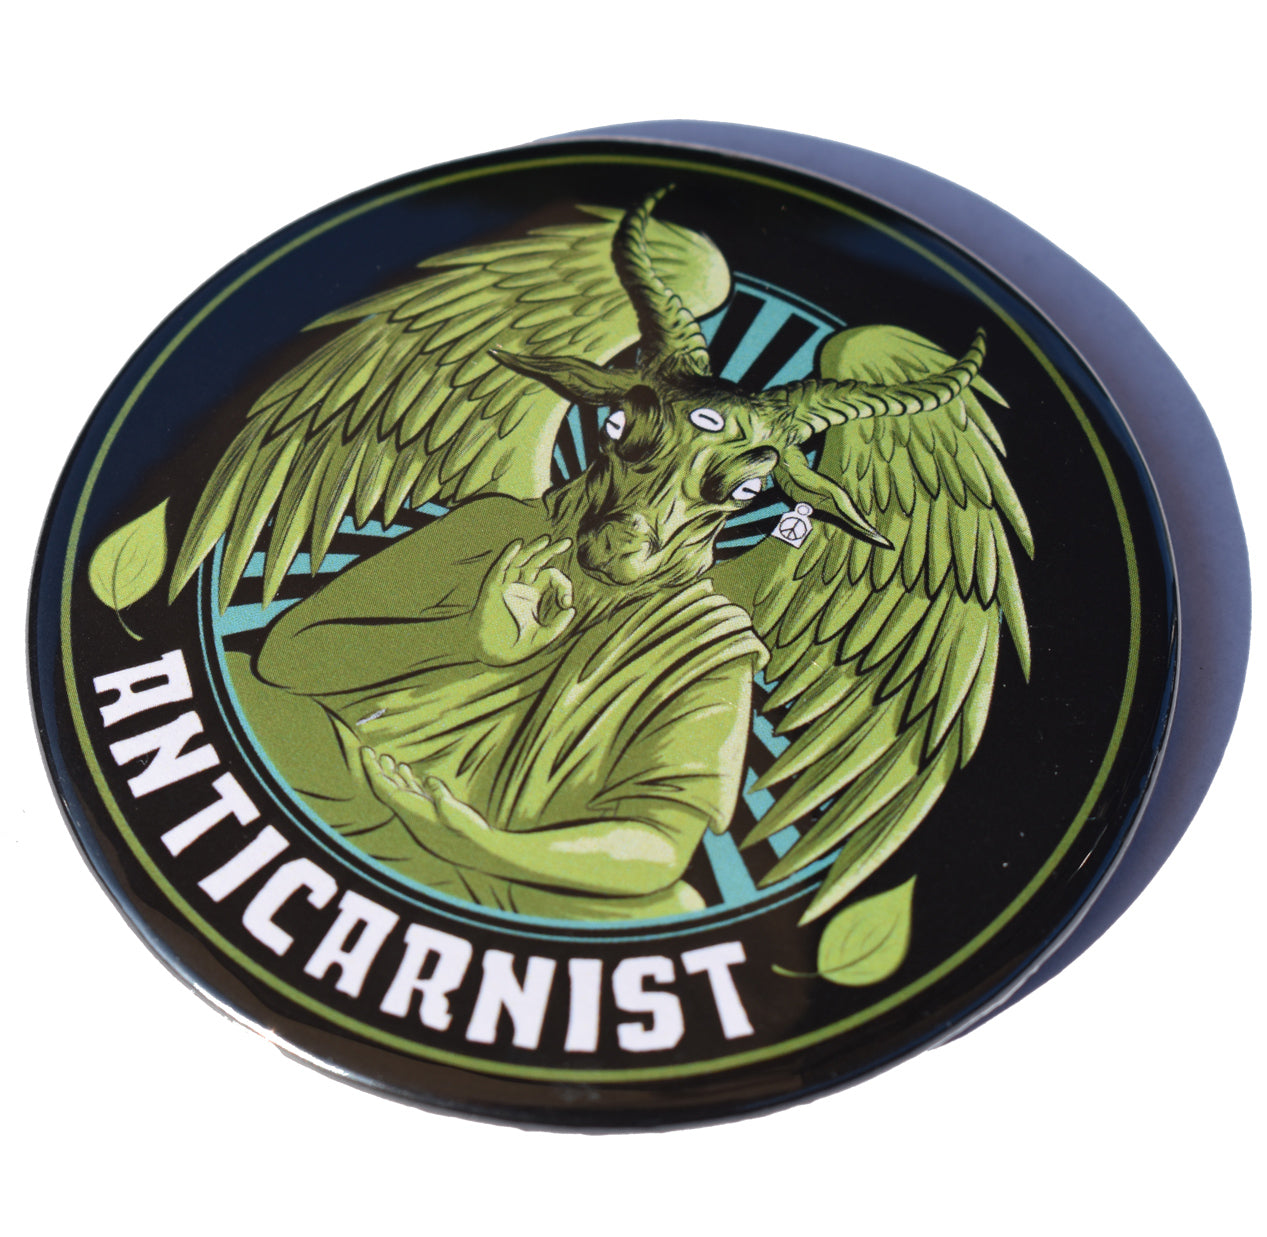 Anticarnist Pocket Mirror